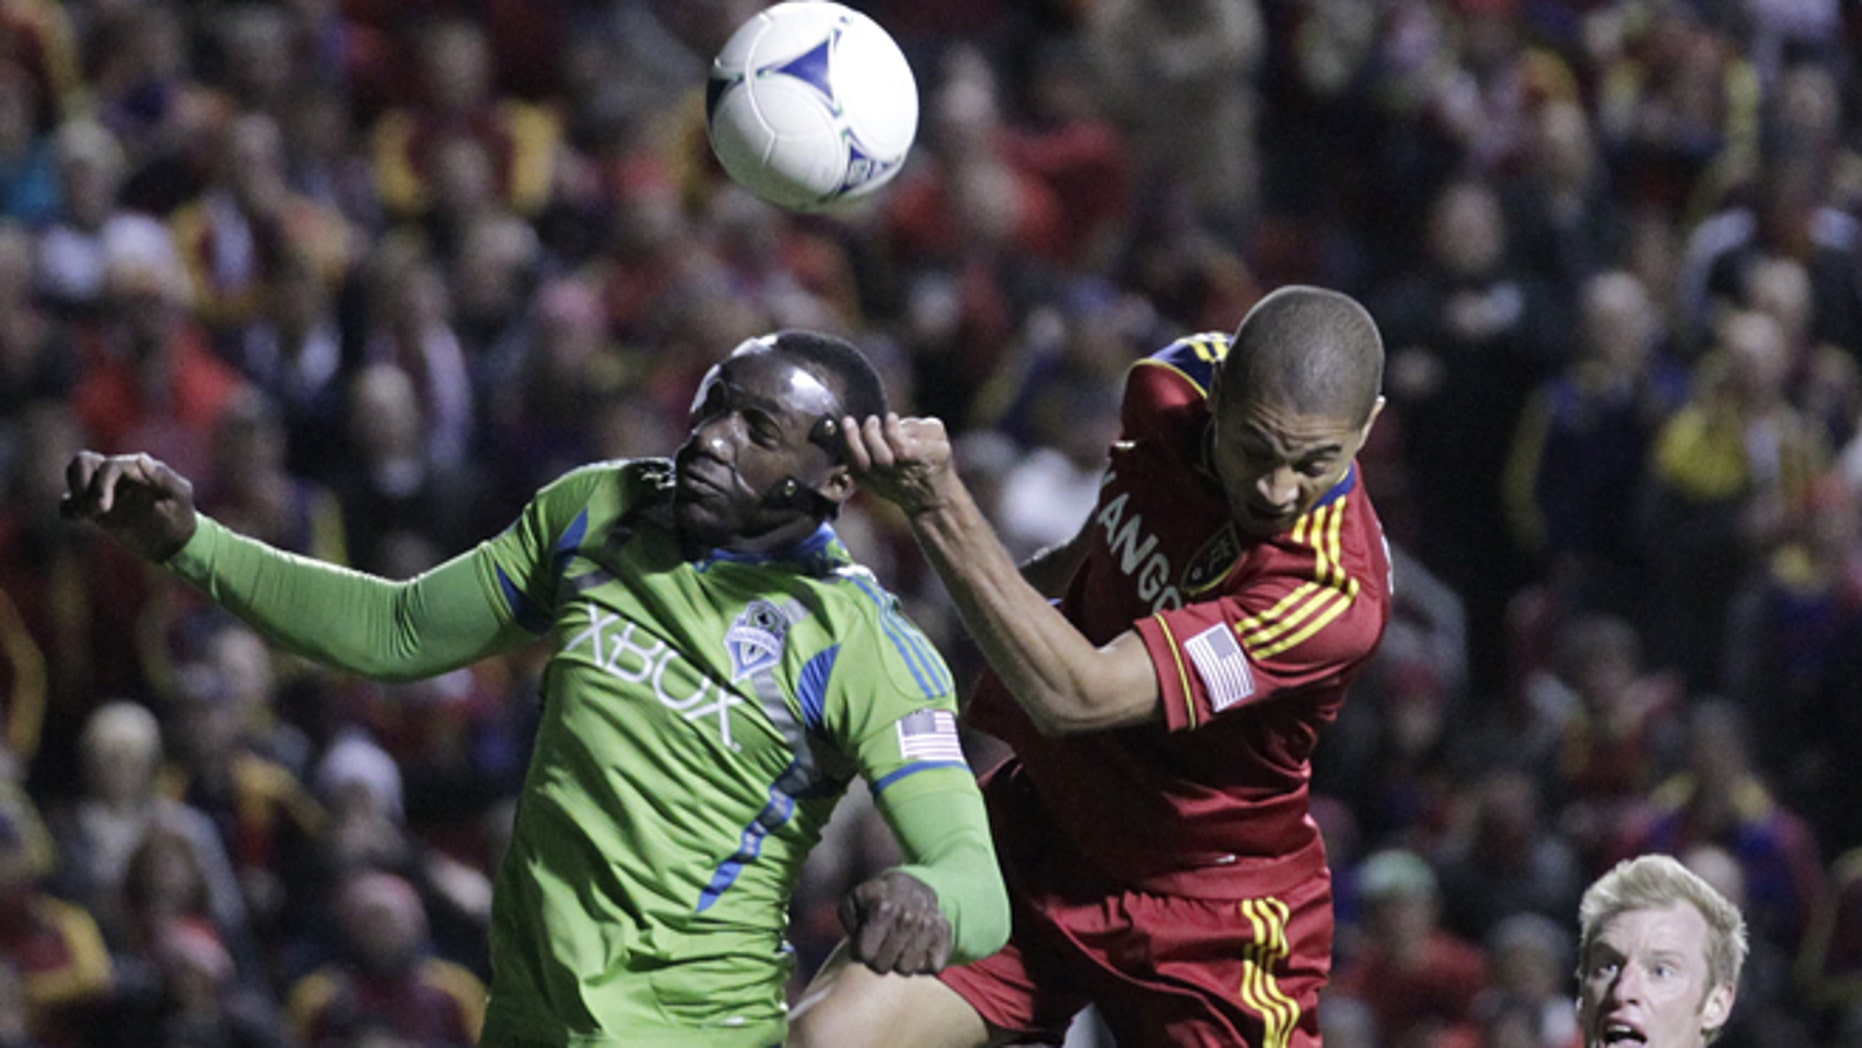 Seattle Sounders defender Jhon Kennedy Hurtado (34) heads the ball as Real Salt Lake forward Alvaro Saborio (15) defends in the second half during an MLS Western Conference semifinal soccer match Thursday, Nov. 8, 2012, in Sandy, Utah. The Sounders defeated Real Salt Lake. The match, the second of a two-match aggregate game, ended with a score of 1-0.  (AP Photo/Rick Bowmer)